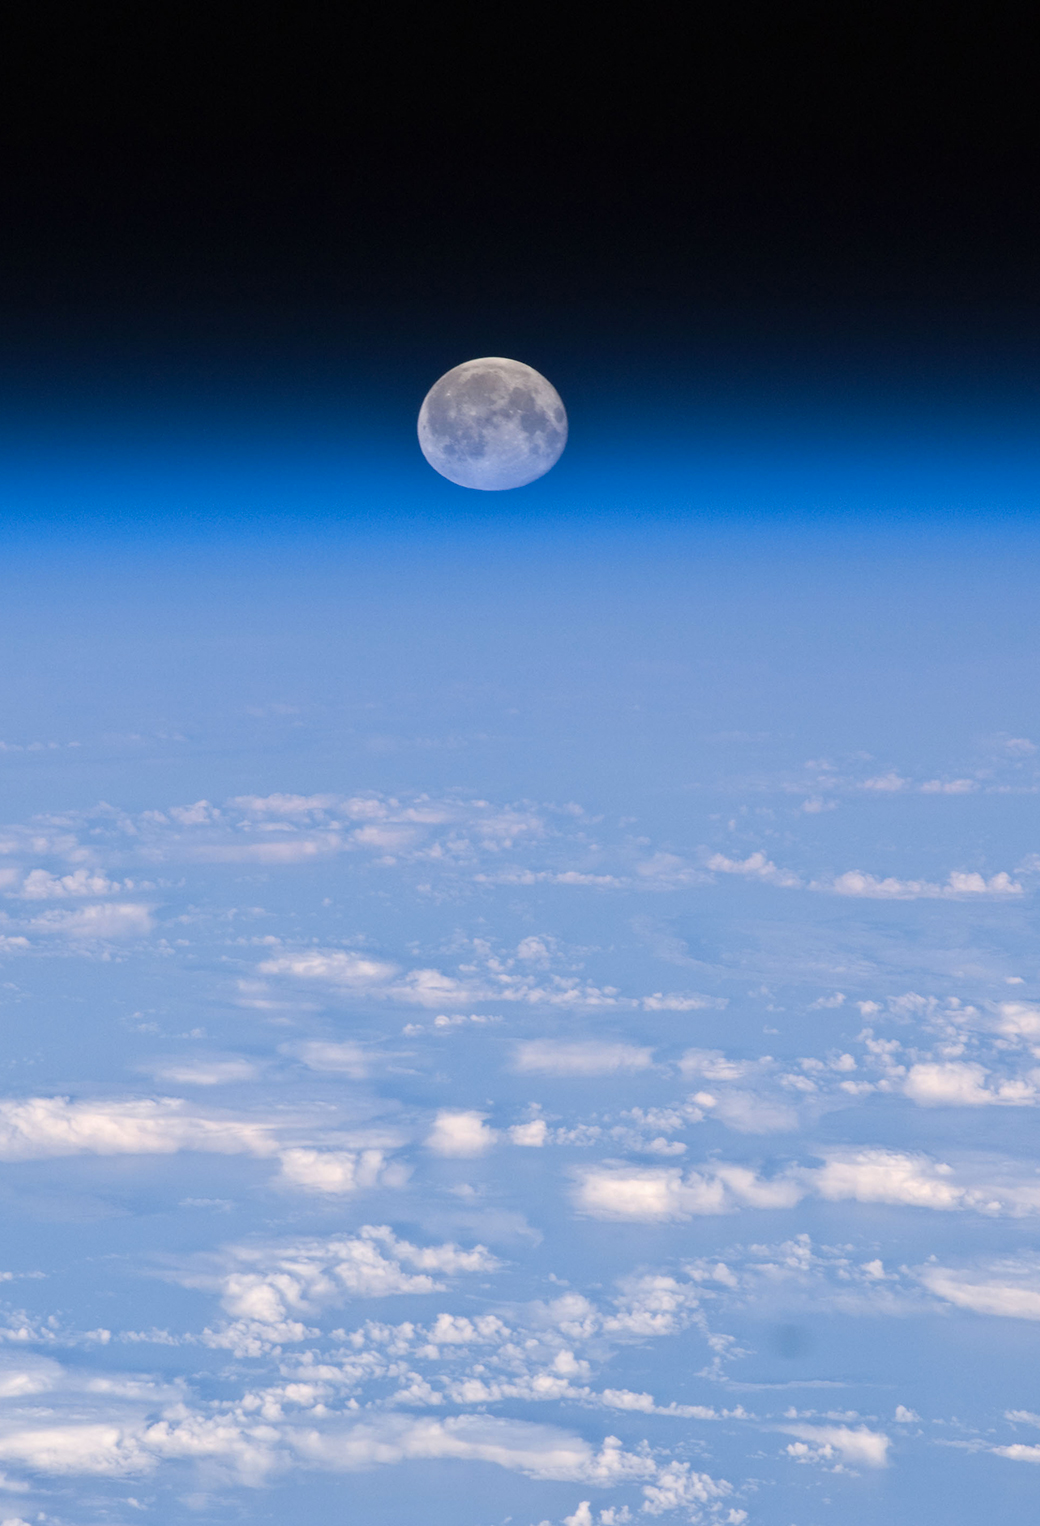 Full Moon Over Earth 3Wallpapers iPhone Parallax Full Moon Over Earth